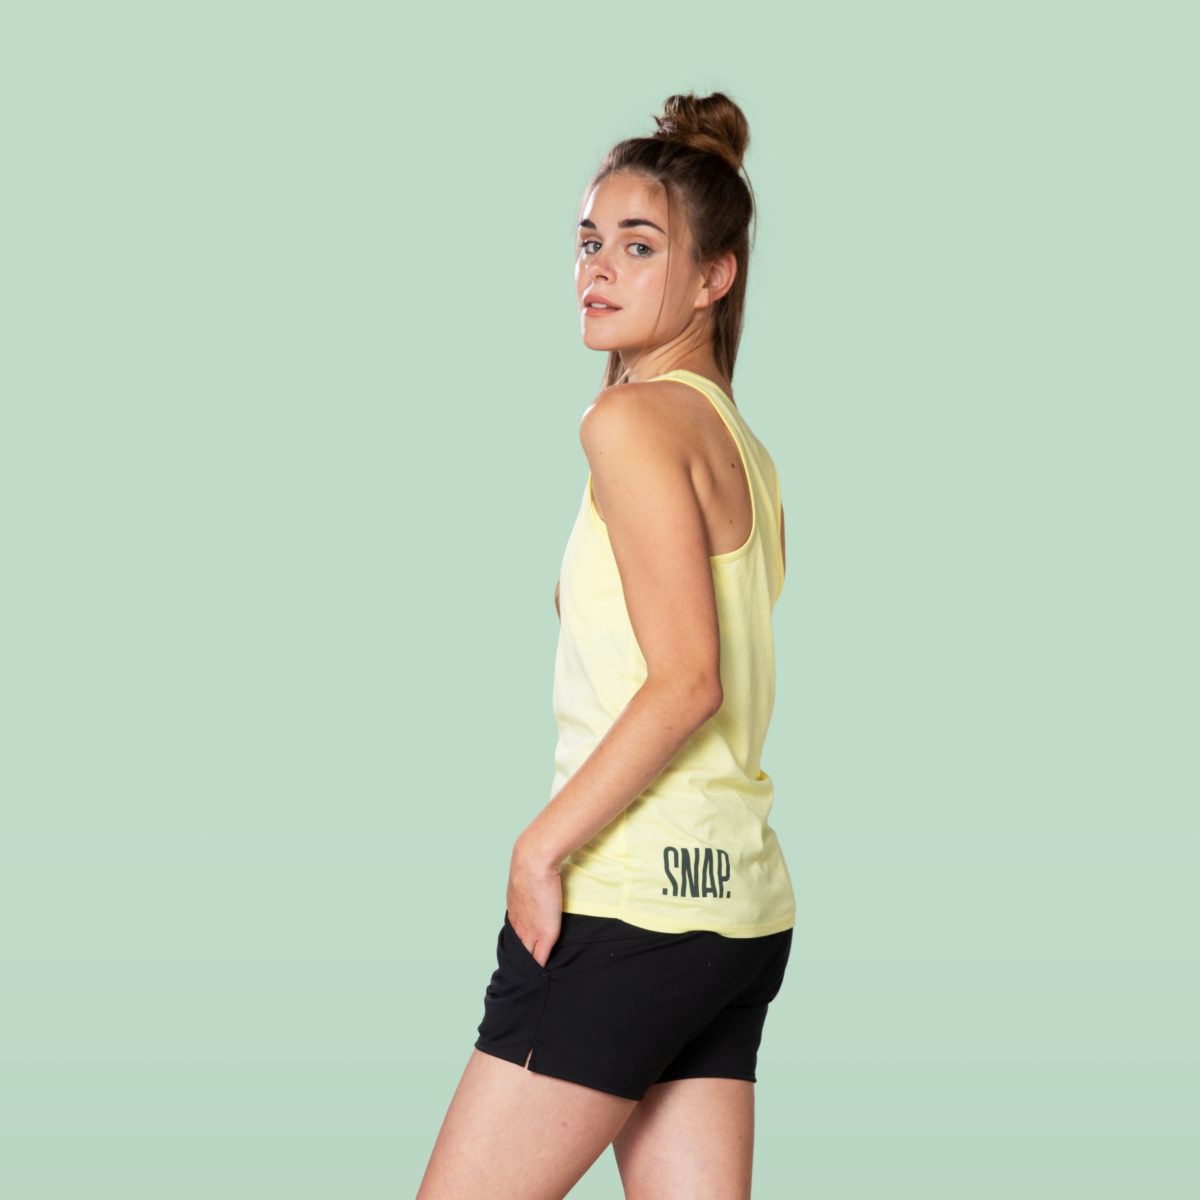 yellow fit tank top side and black sportswear shorts